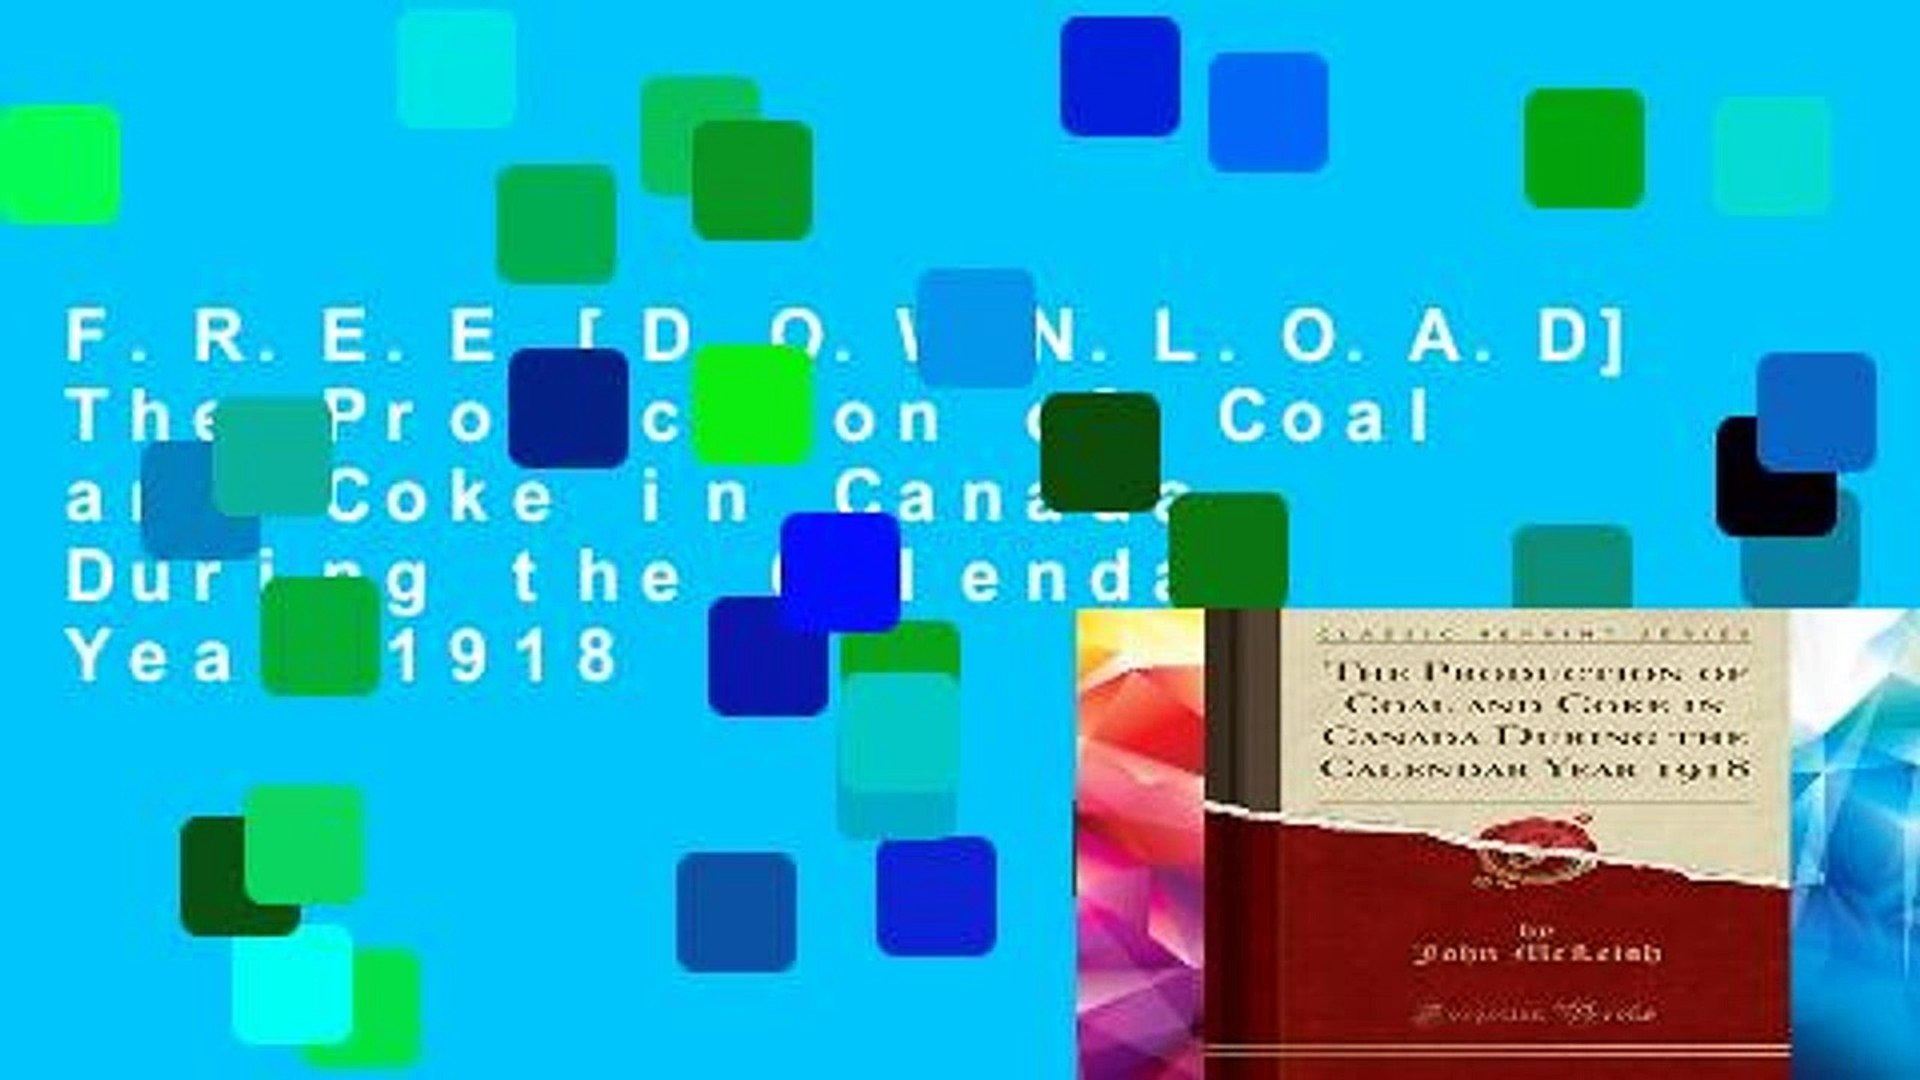 F.R.E.E [D.O.W.N.L.O.A.D] The Production of Coal and Coke in Canada During the Calendar Year 1918